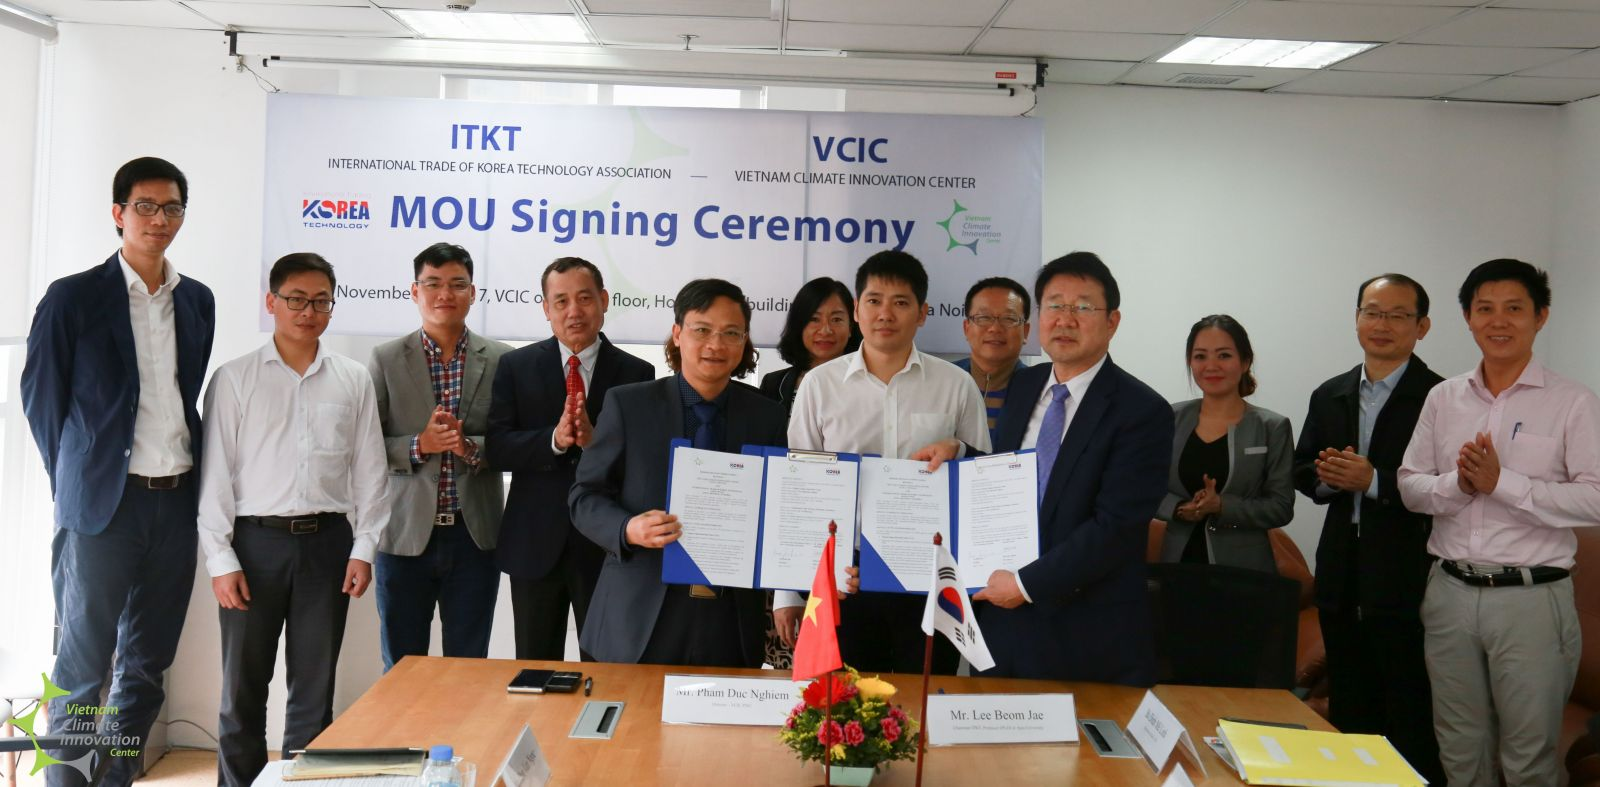 Signing ceremony of the memorandum of understanding between VCIC and I T K T